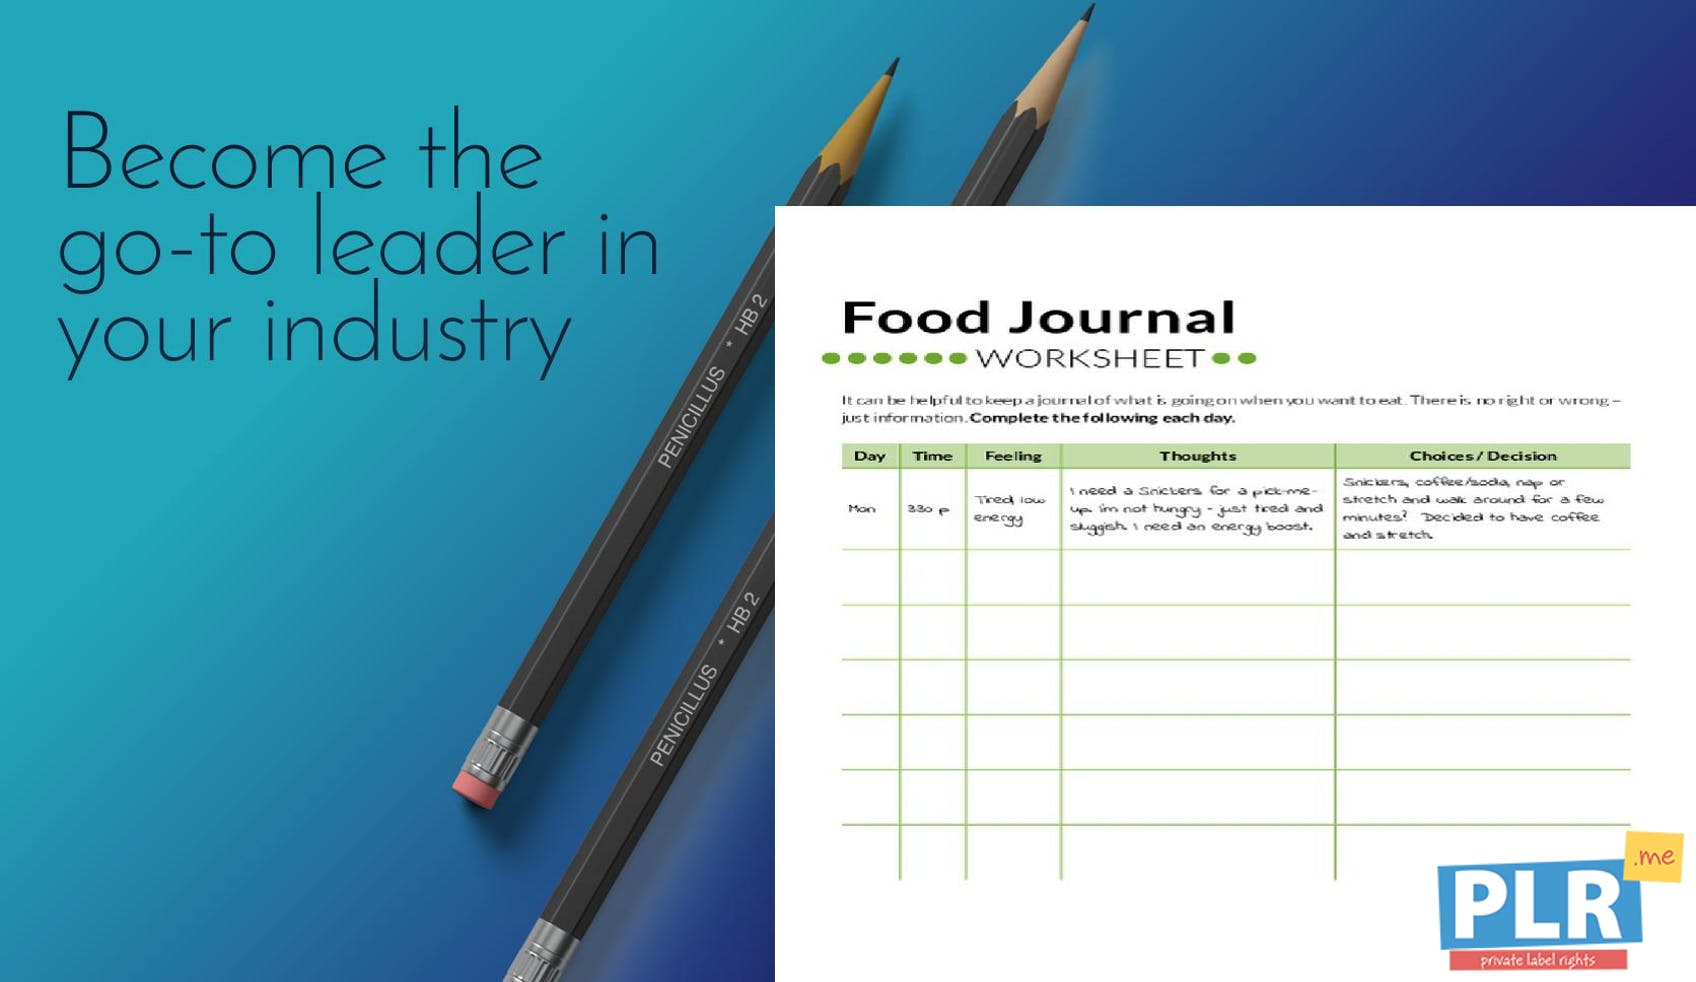 PLR Worksheets - Food Journal Worksheet - PLR.me